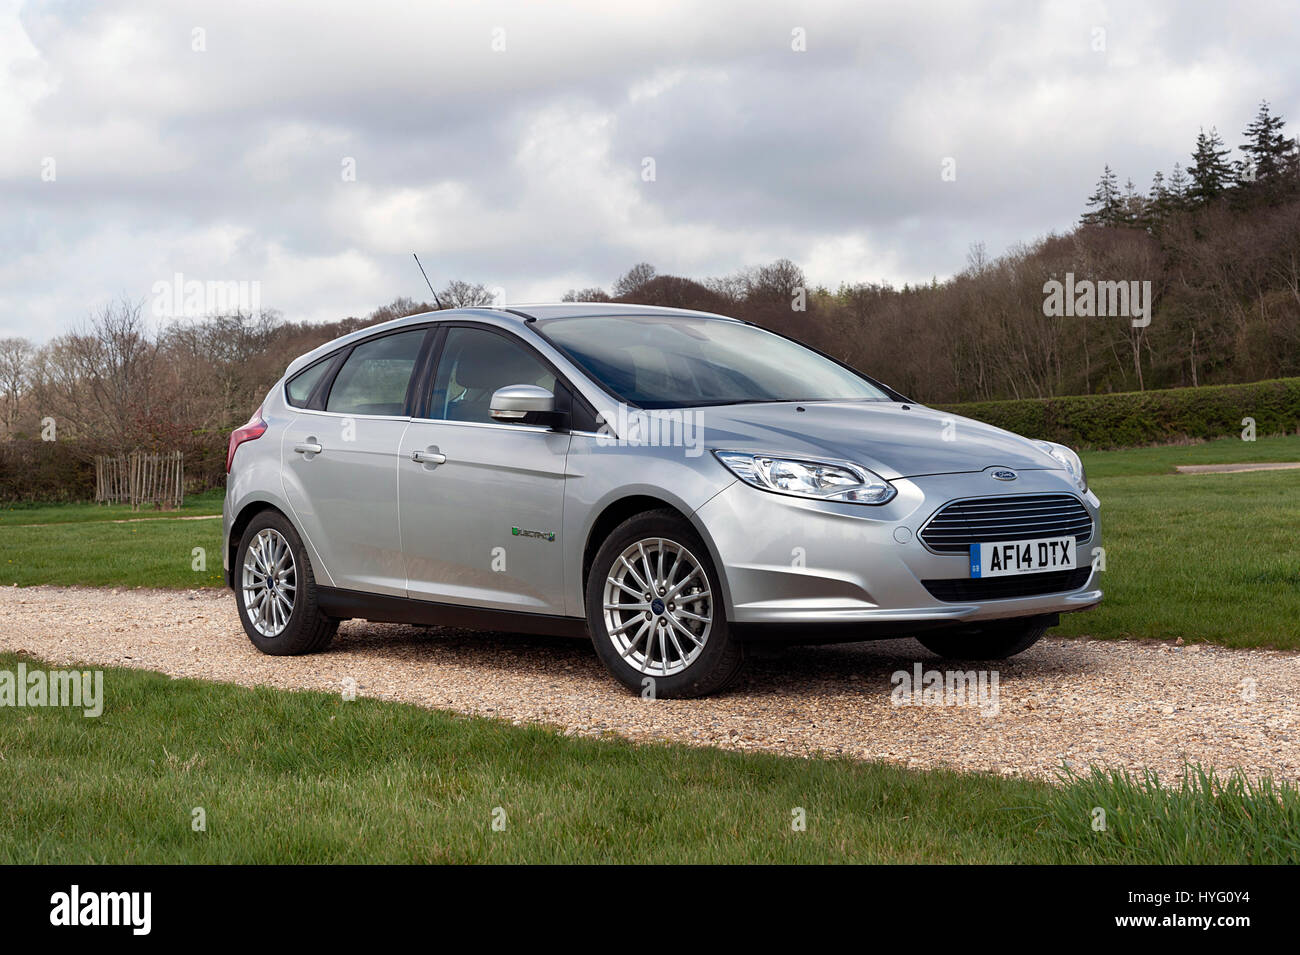 Ford Focus Electric Car 2014 Stockbild